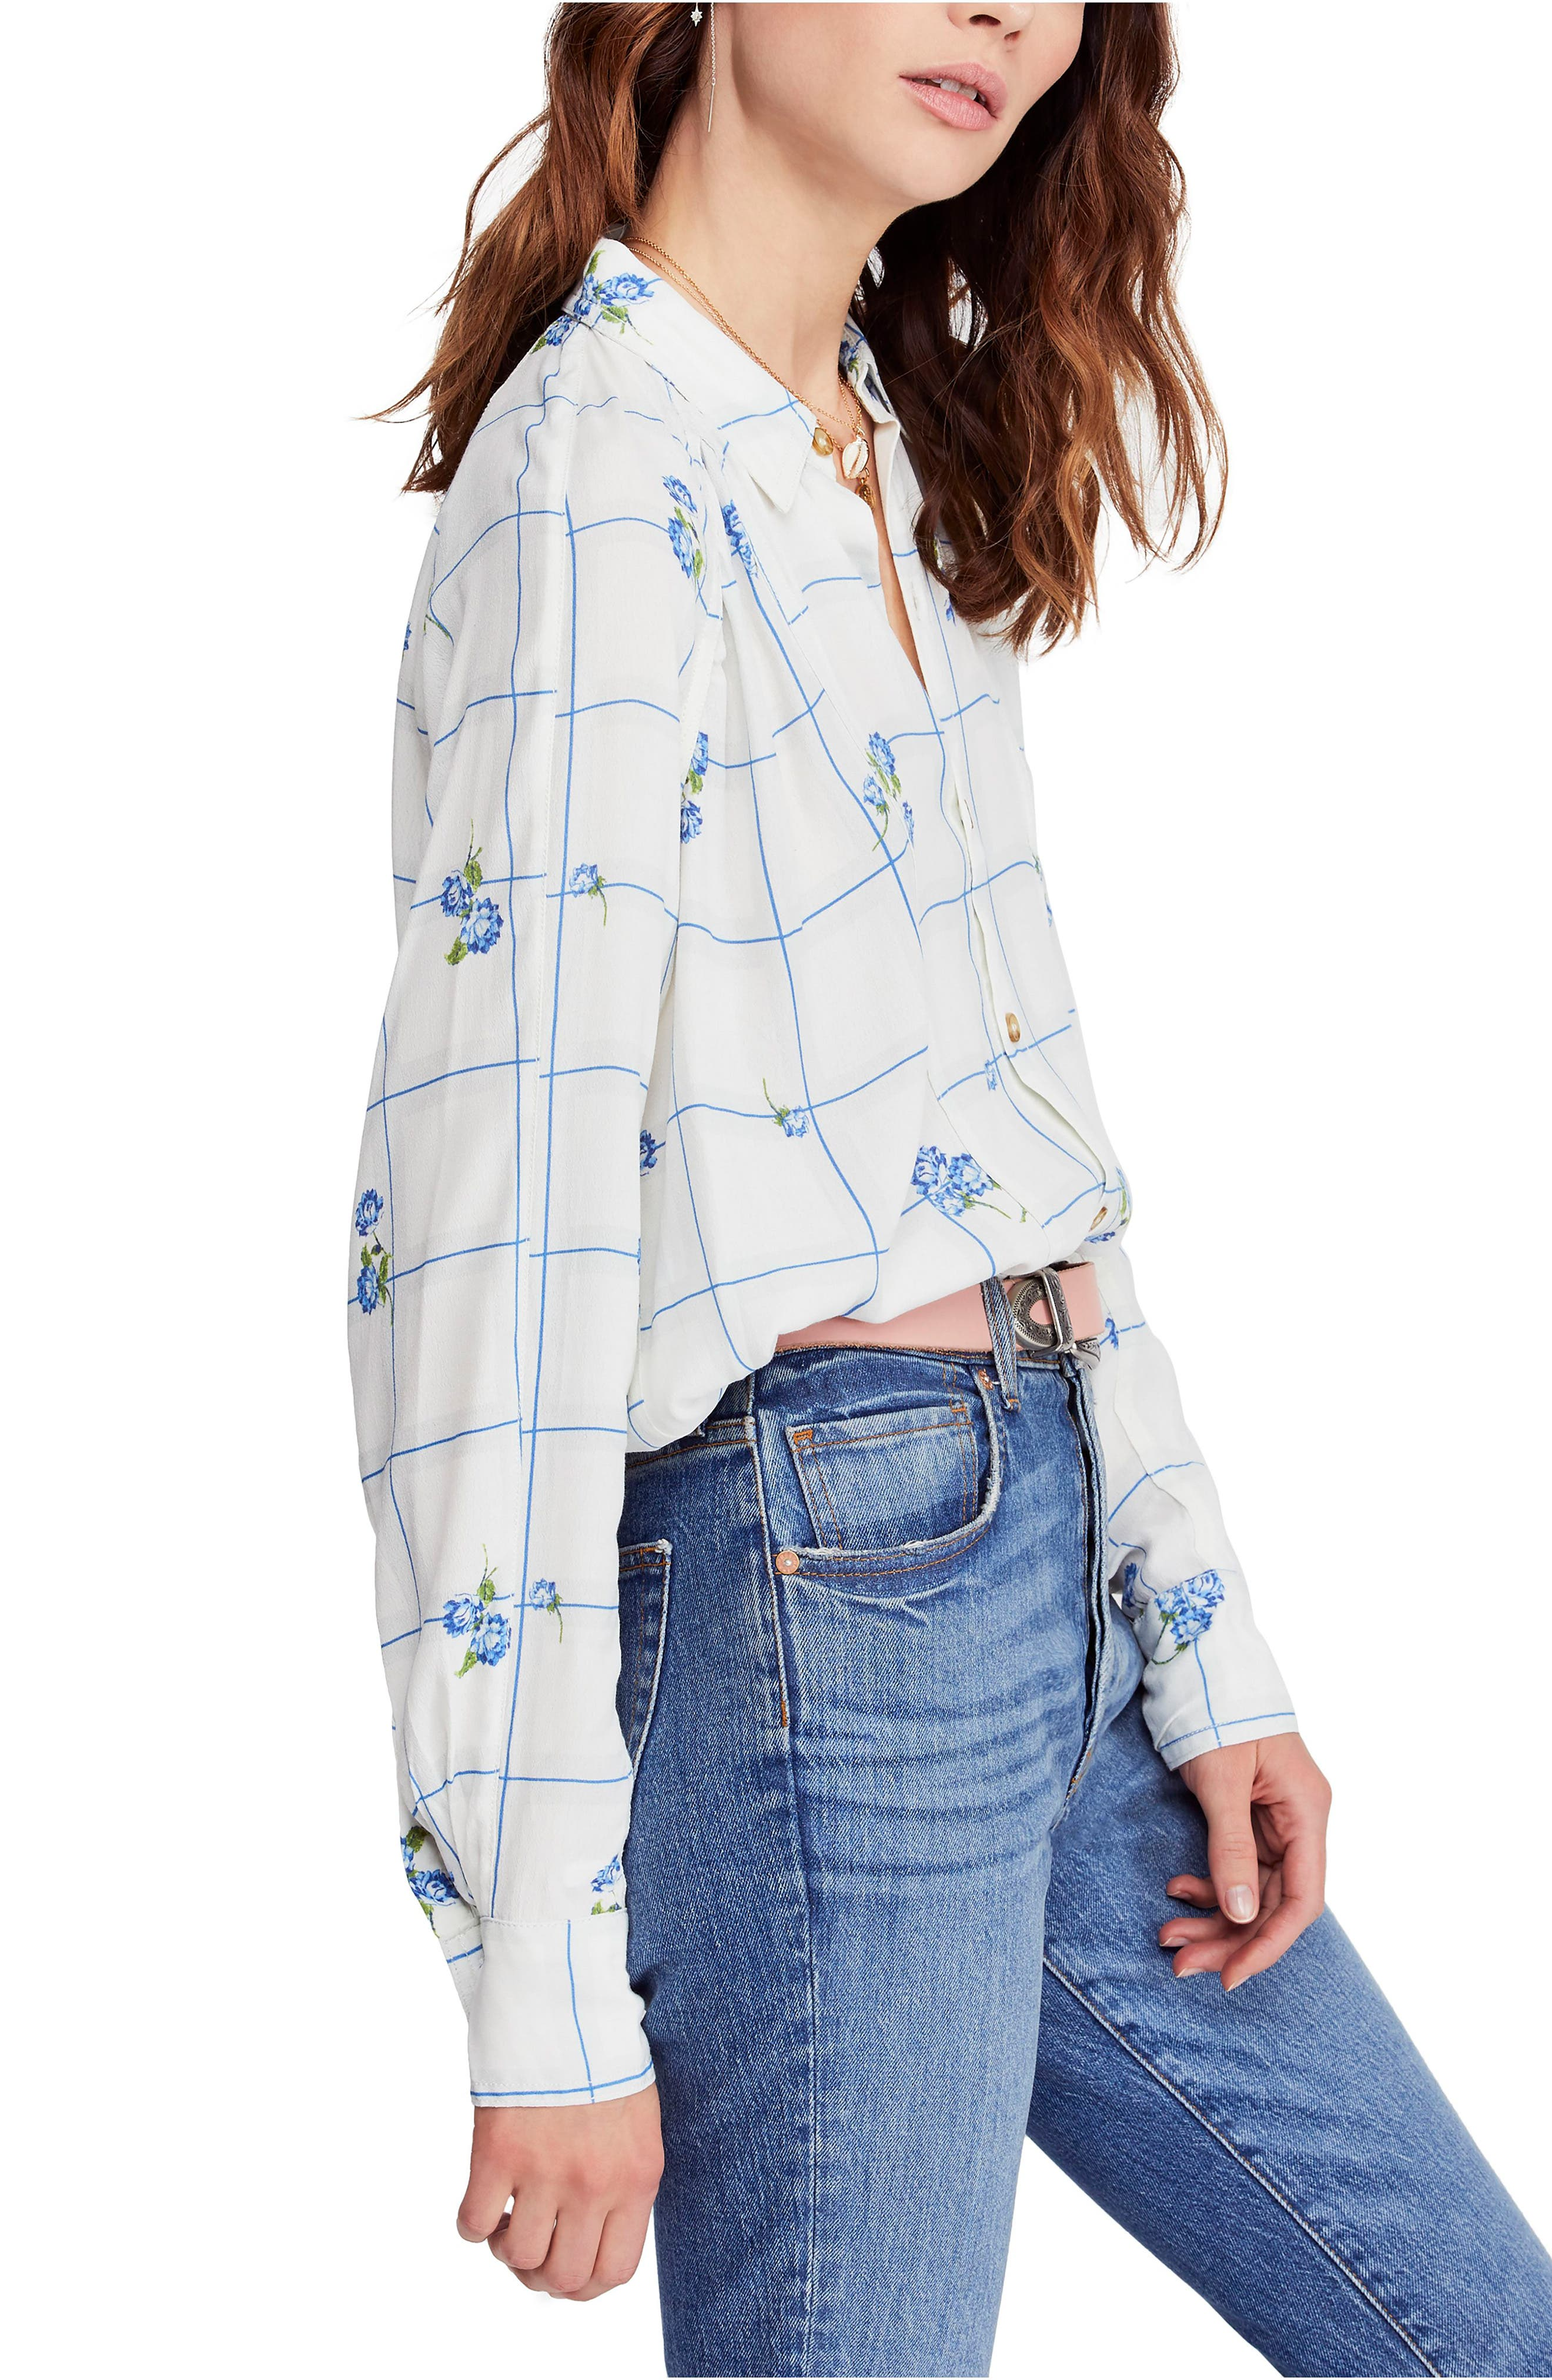 FREE PEOPLE, Window to My Heart Blouse, Alternate thumbnail 3, color, WHITE